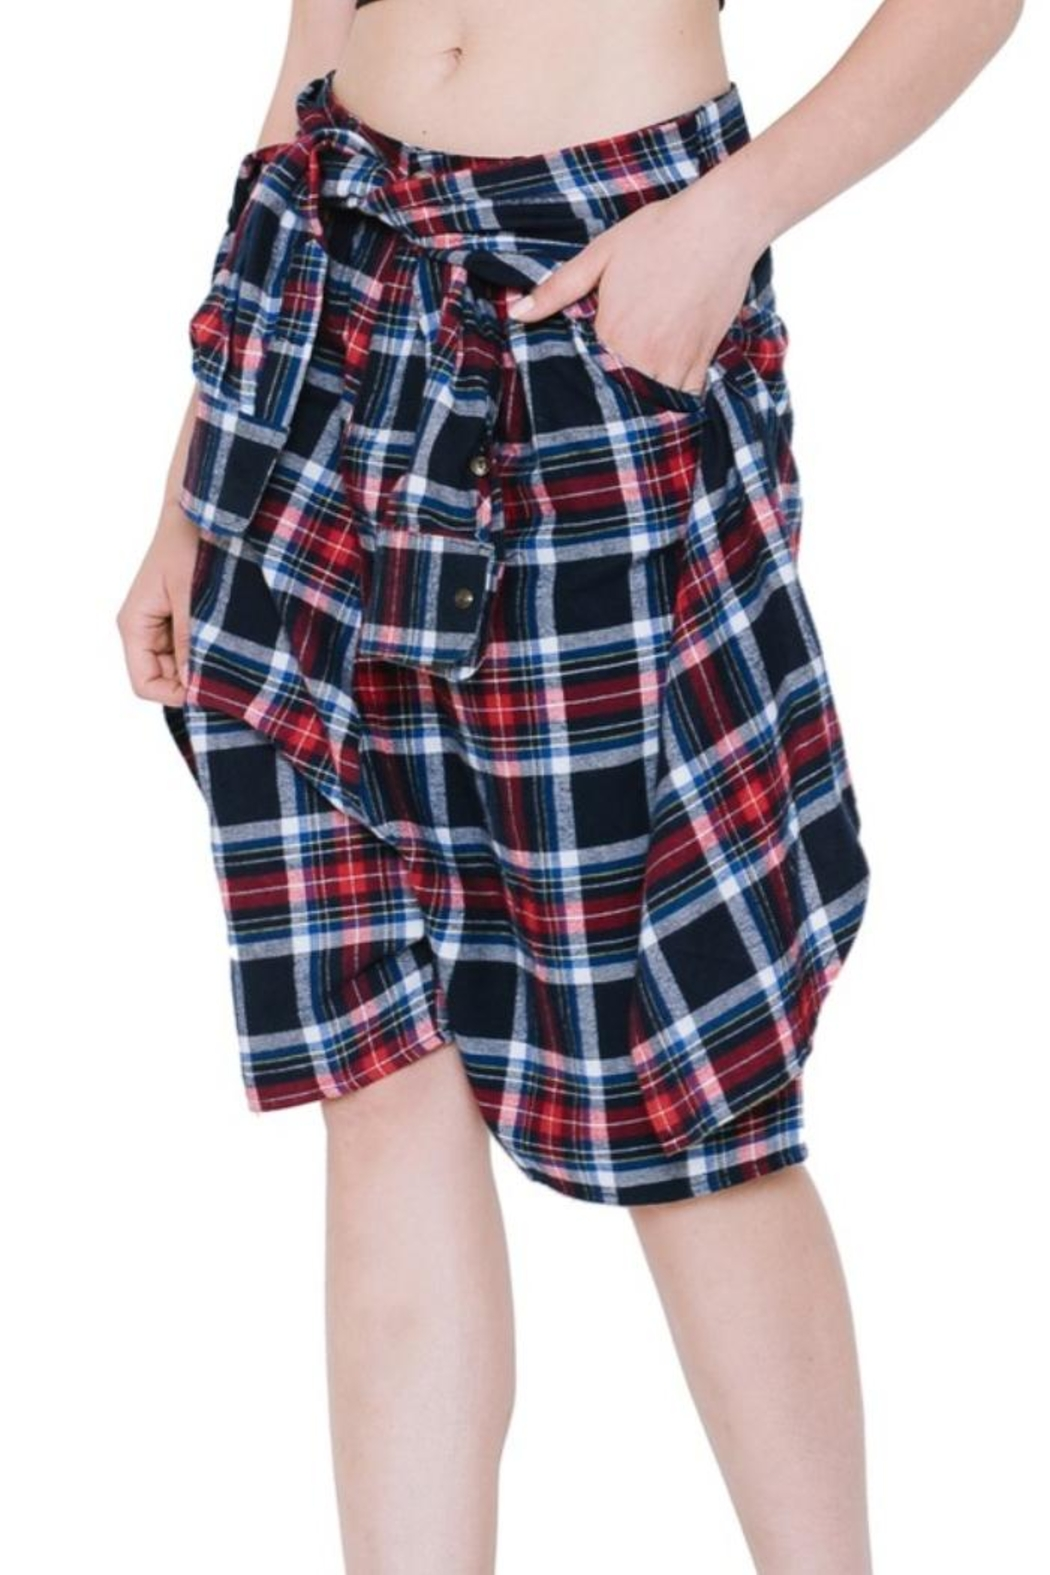 Renee C Plaid Shorts - Side Cropped Image